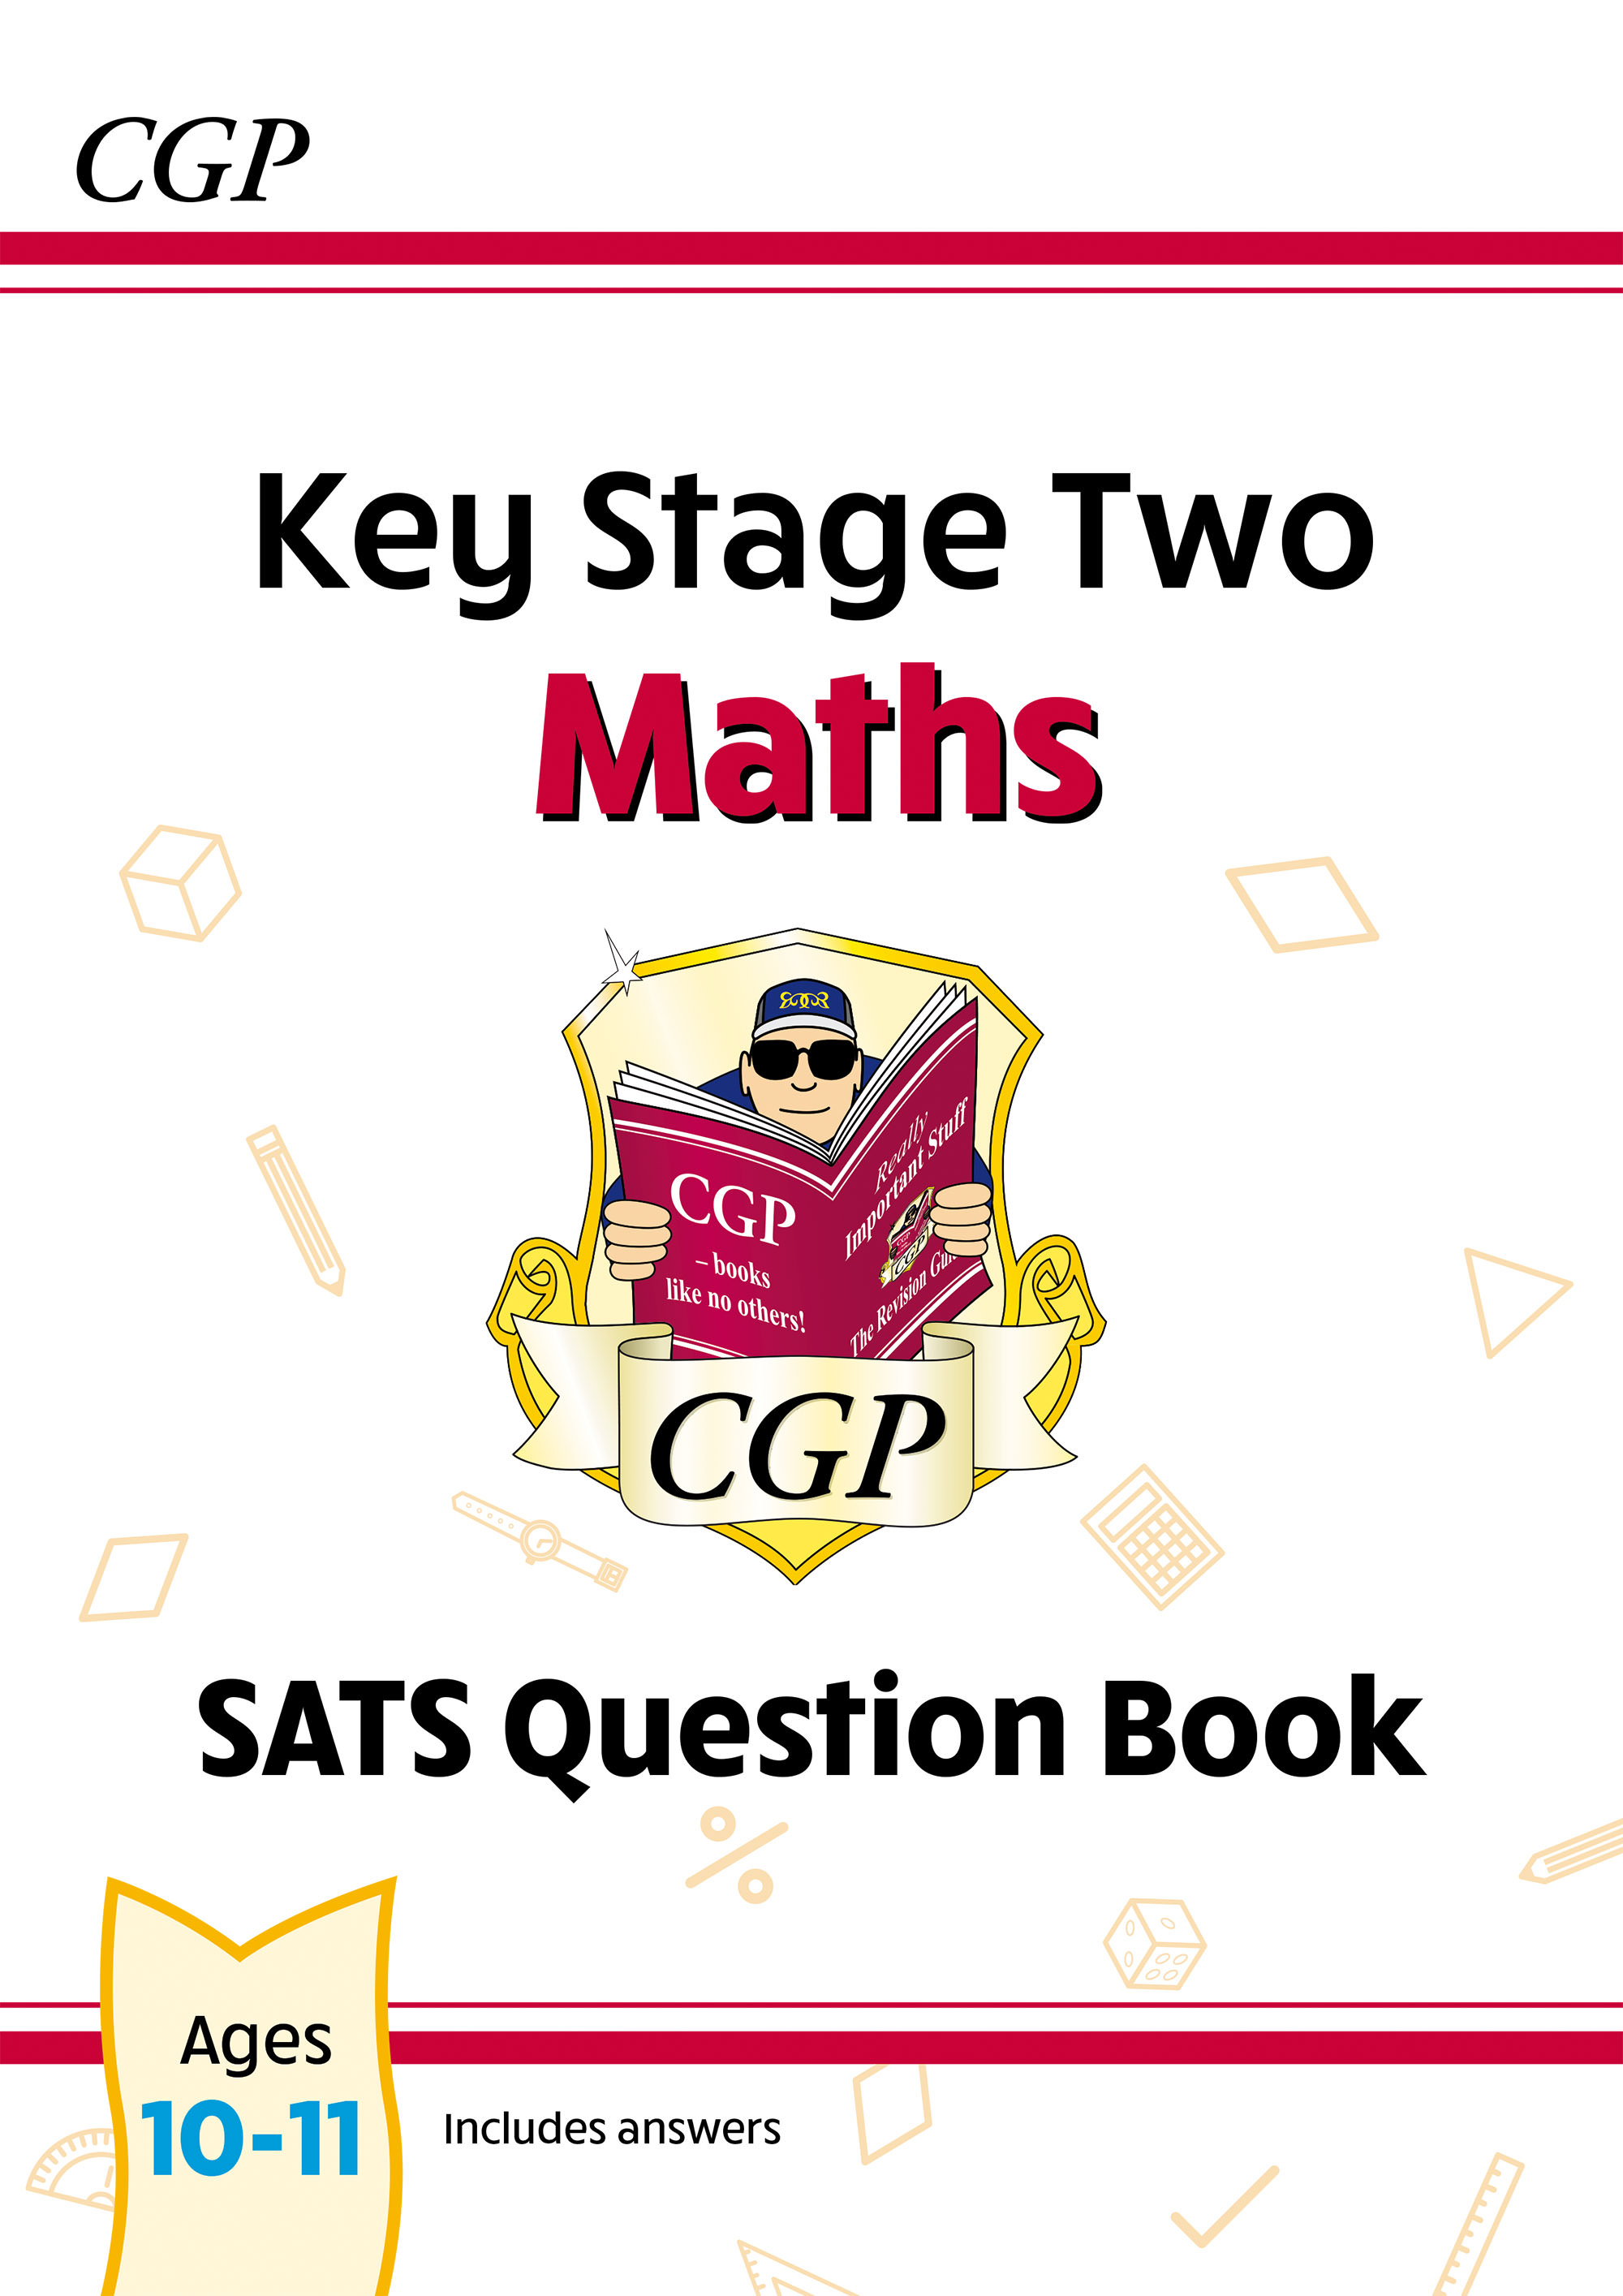 MLFW23D - New KS2 Maths SATS Question Book - Ages 10-11 (for the 2021 tests) Online Edition